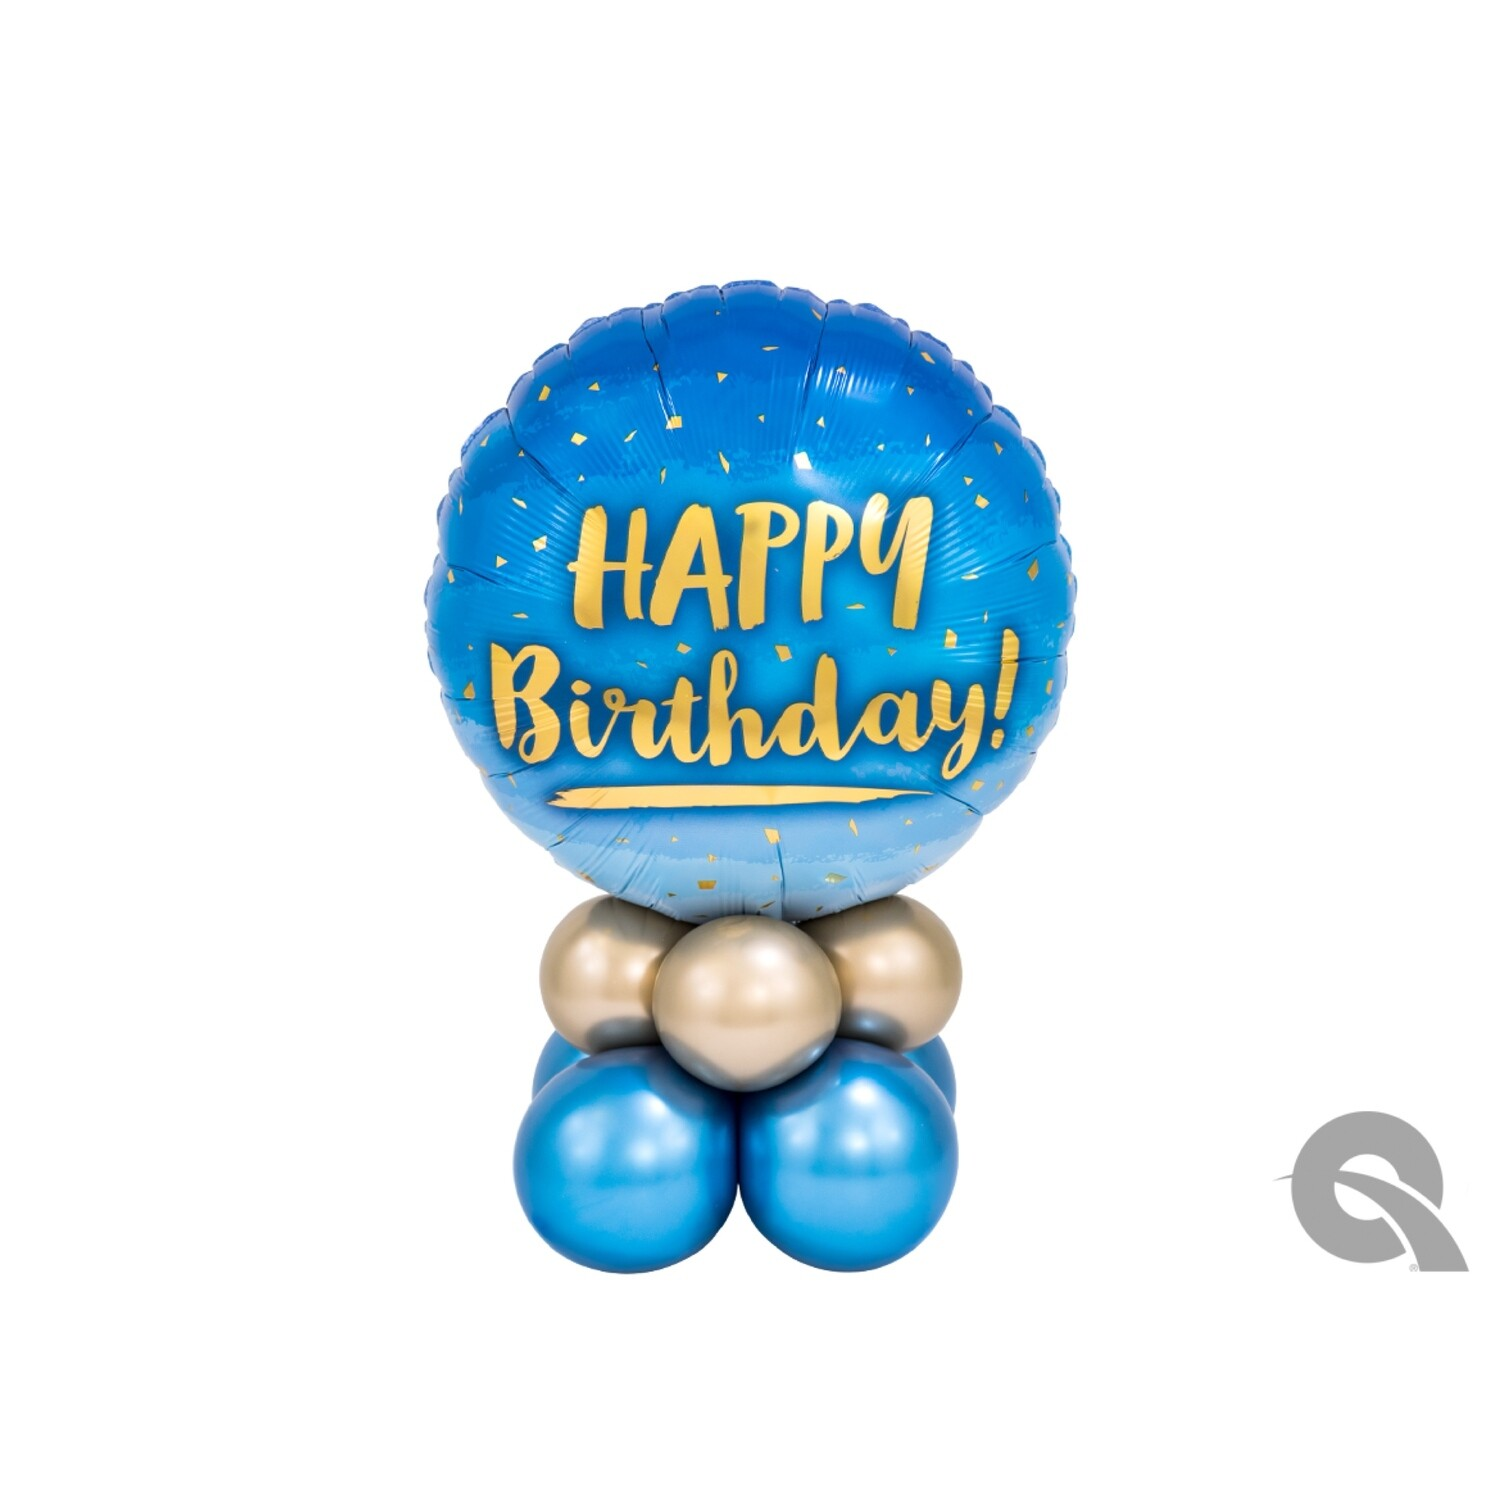 Happy Birthday Blue & Gold Balloon Bouquet Designs